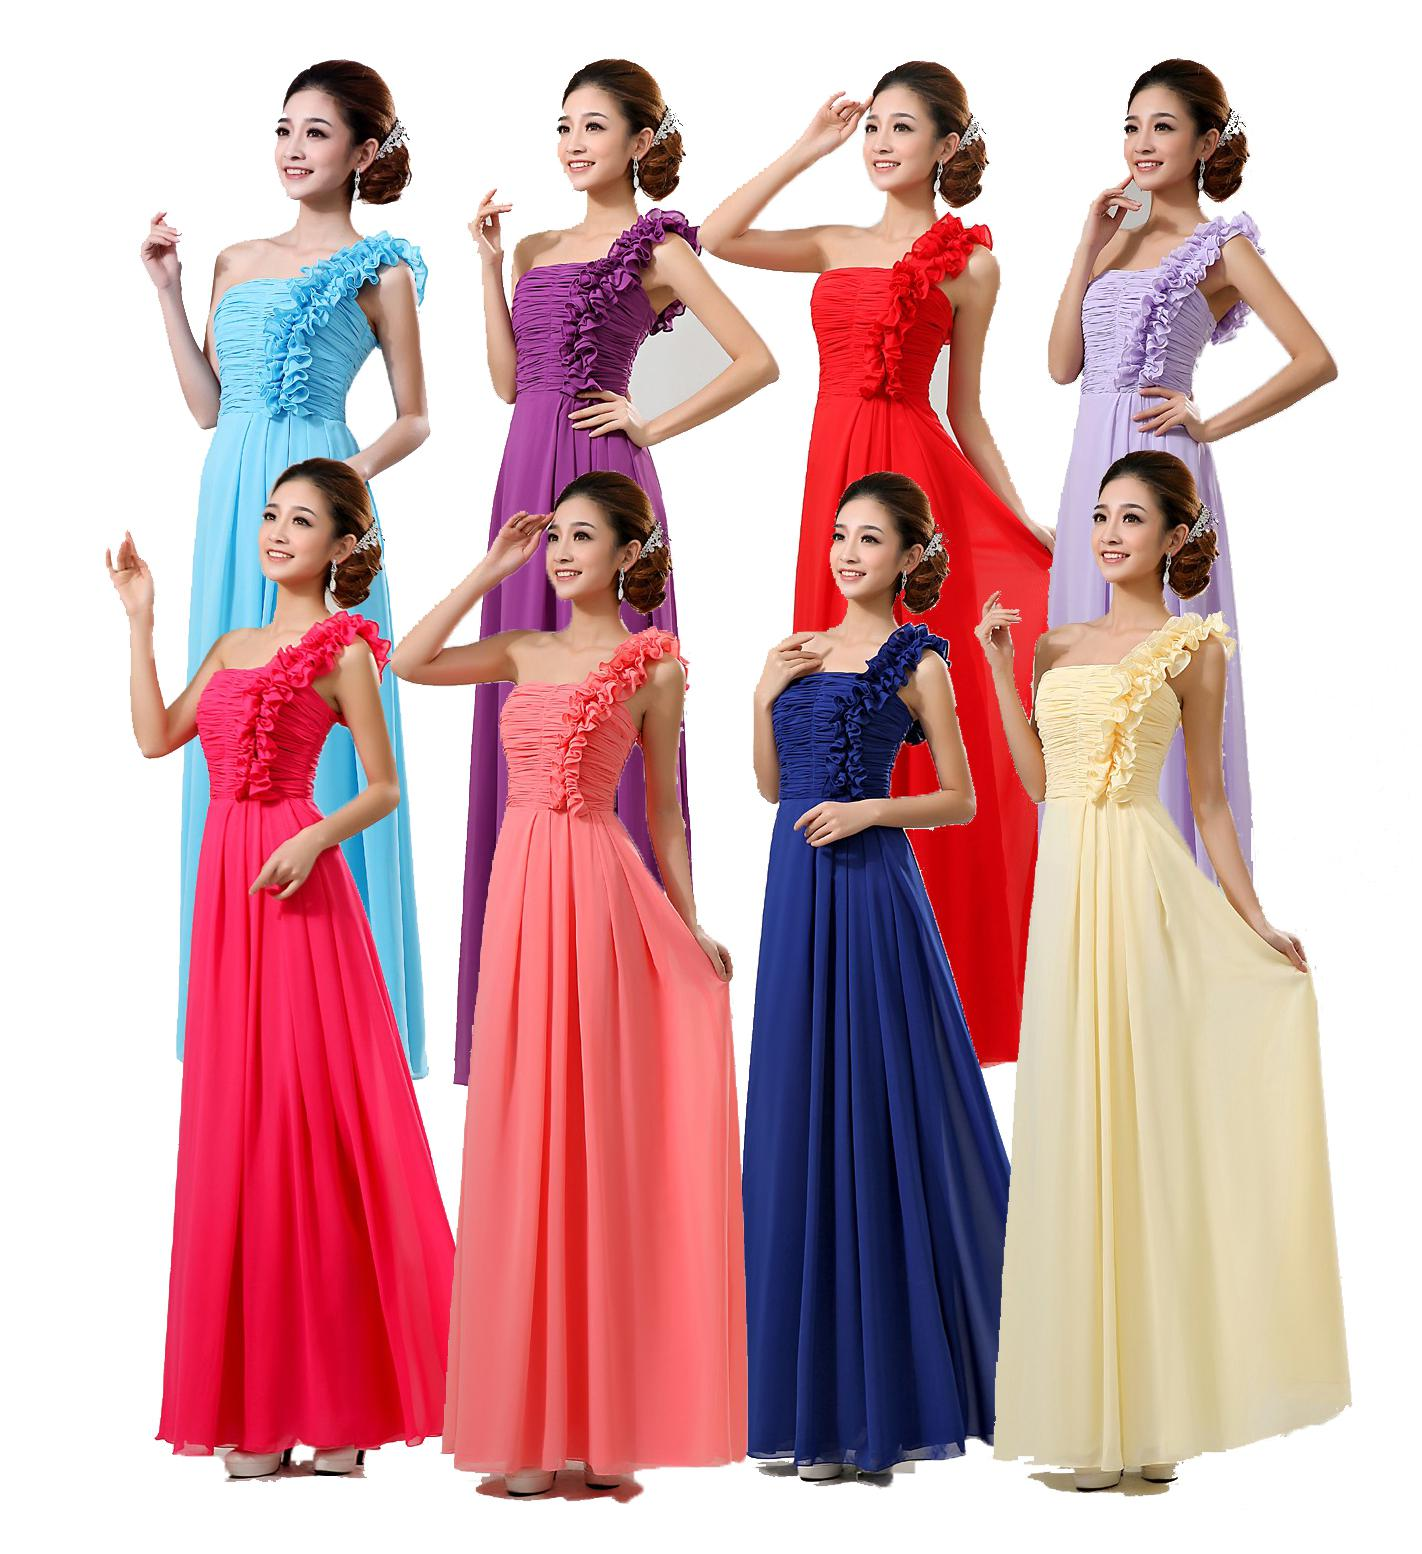 Bridesmaid chiffon one shoulder wedding dresses evening womens bridesmaid chiffon one shoulder wedding dresses evening womens long red blue purple yellow dress cheap purple bridesmaid dresses designer bridal gowns from ombrellifo Image collections